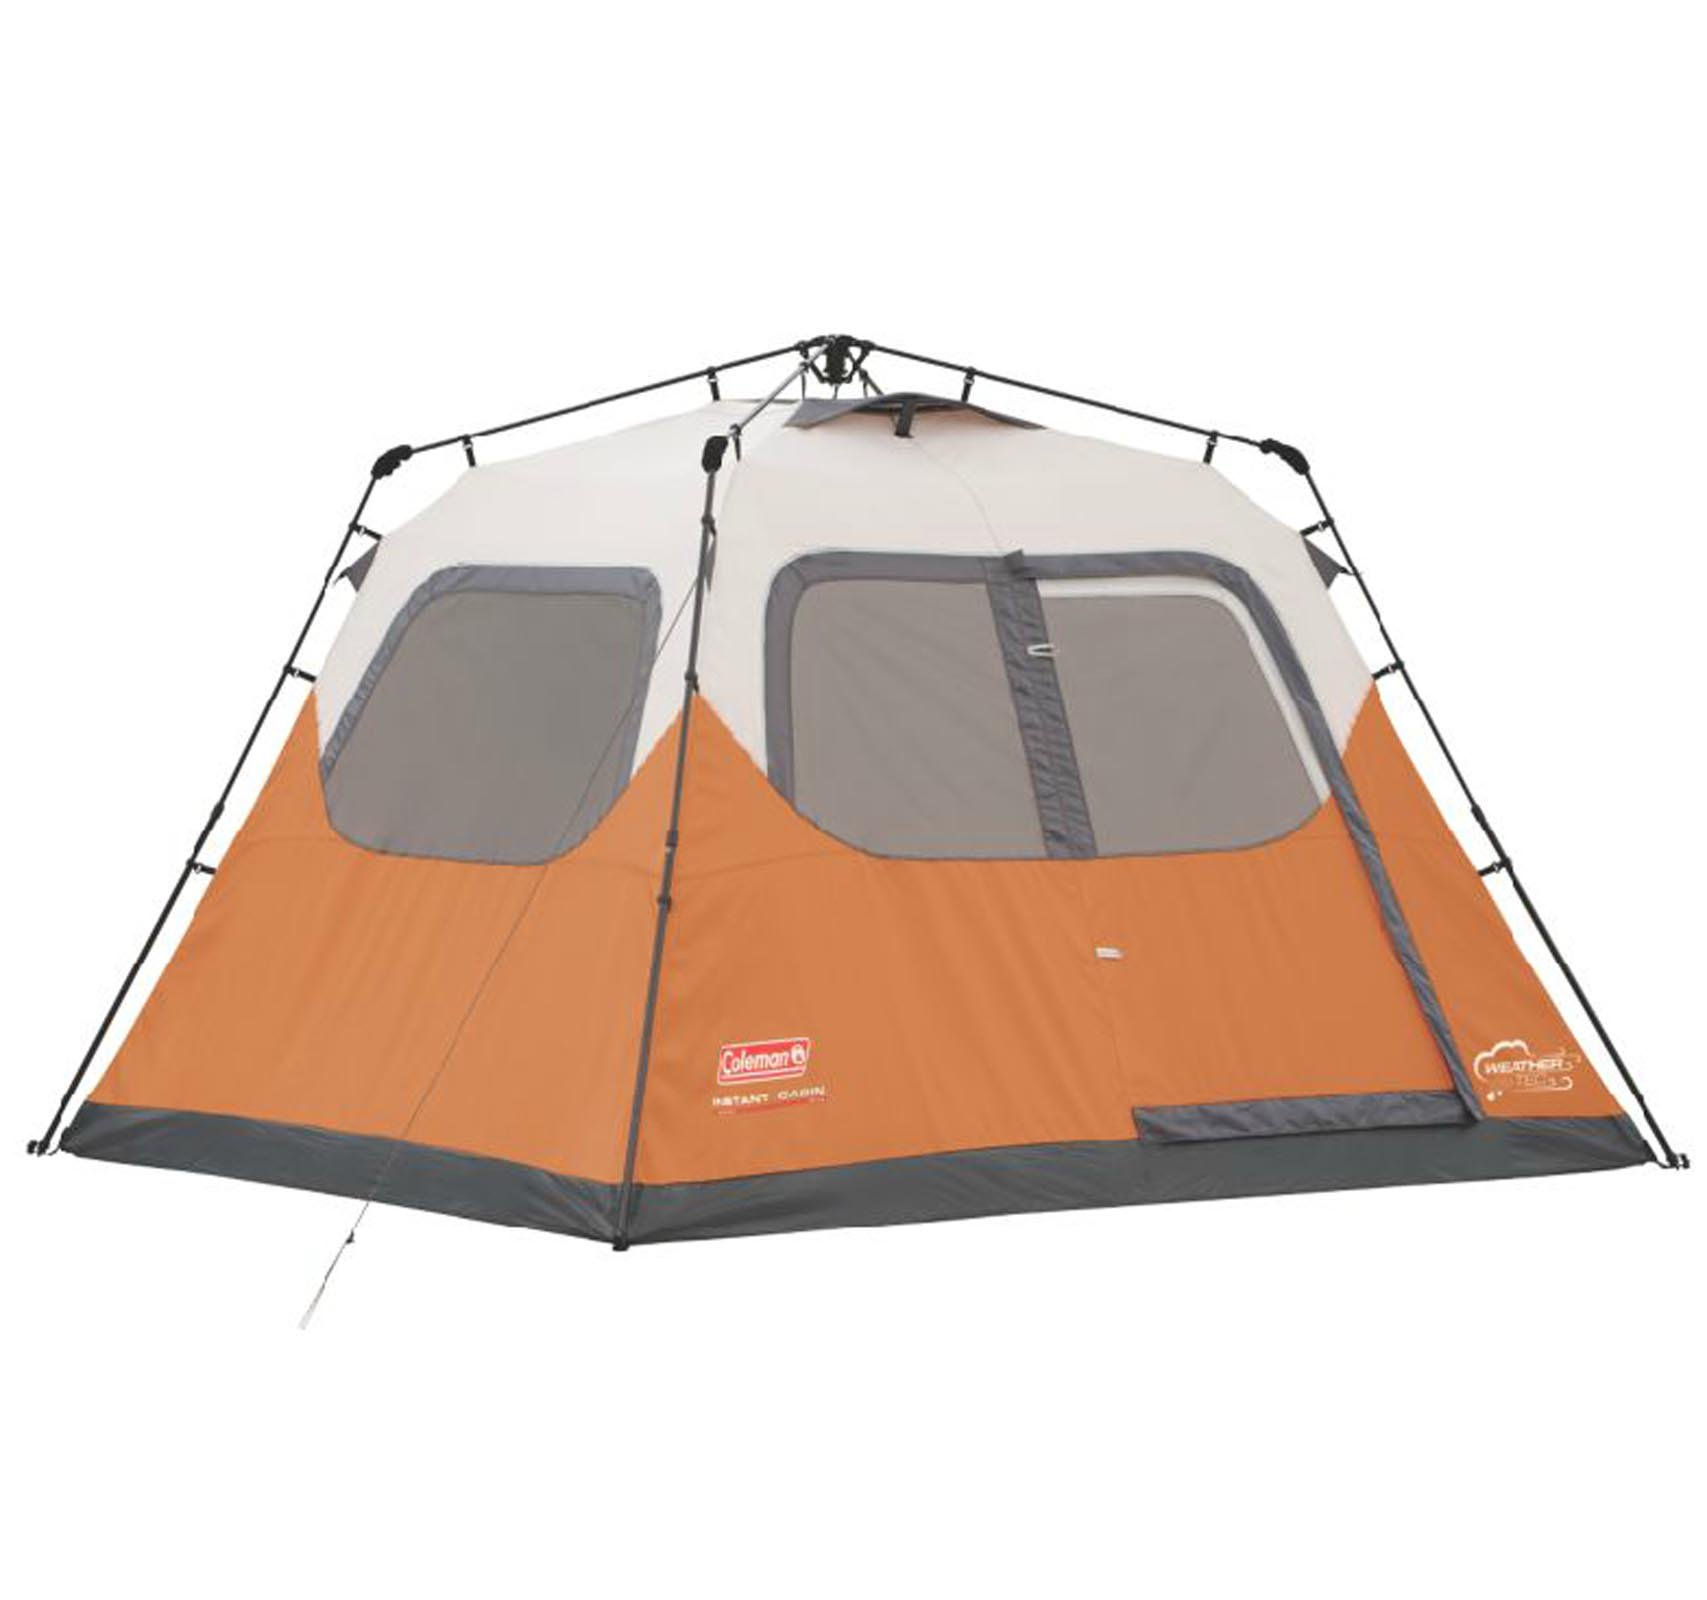 Coleman Outdoor 6 Person 10u0027 x 9u0027 Easy Set Up Family C&ing Instant Pop  sc 1 st  Walmart & Family Camping Tents